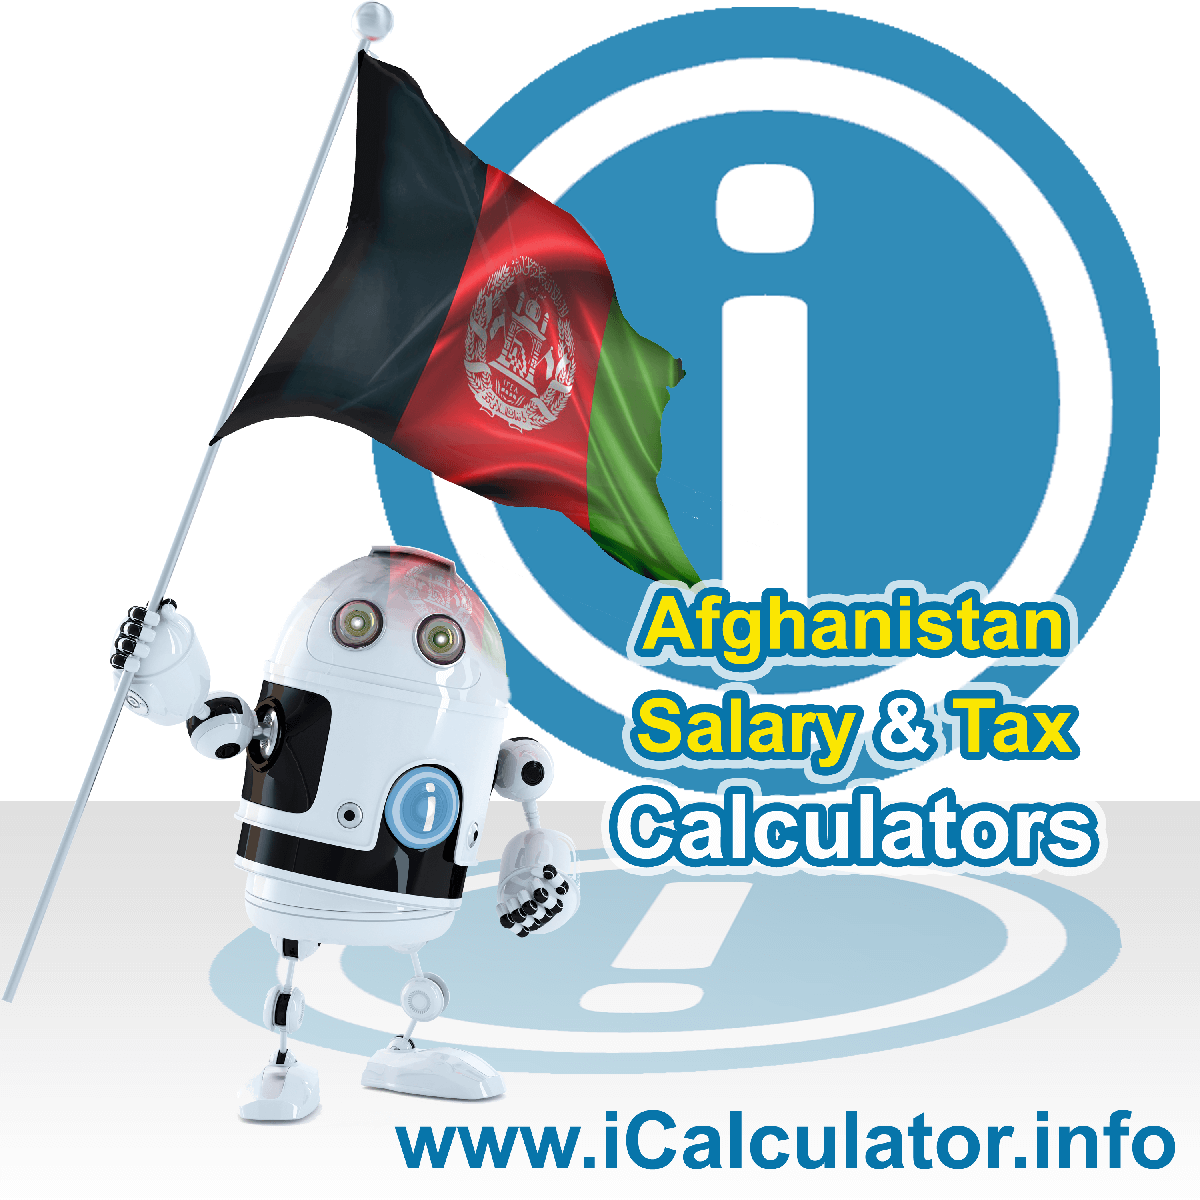 Afghanistan Salary Calculator. This image shows the Afghanistanese flag and information relating to the tax formula for the Afghanistan Tax Calculator